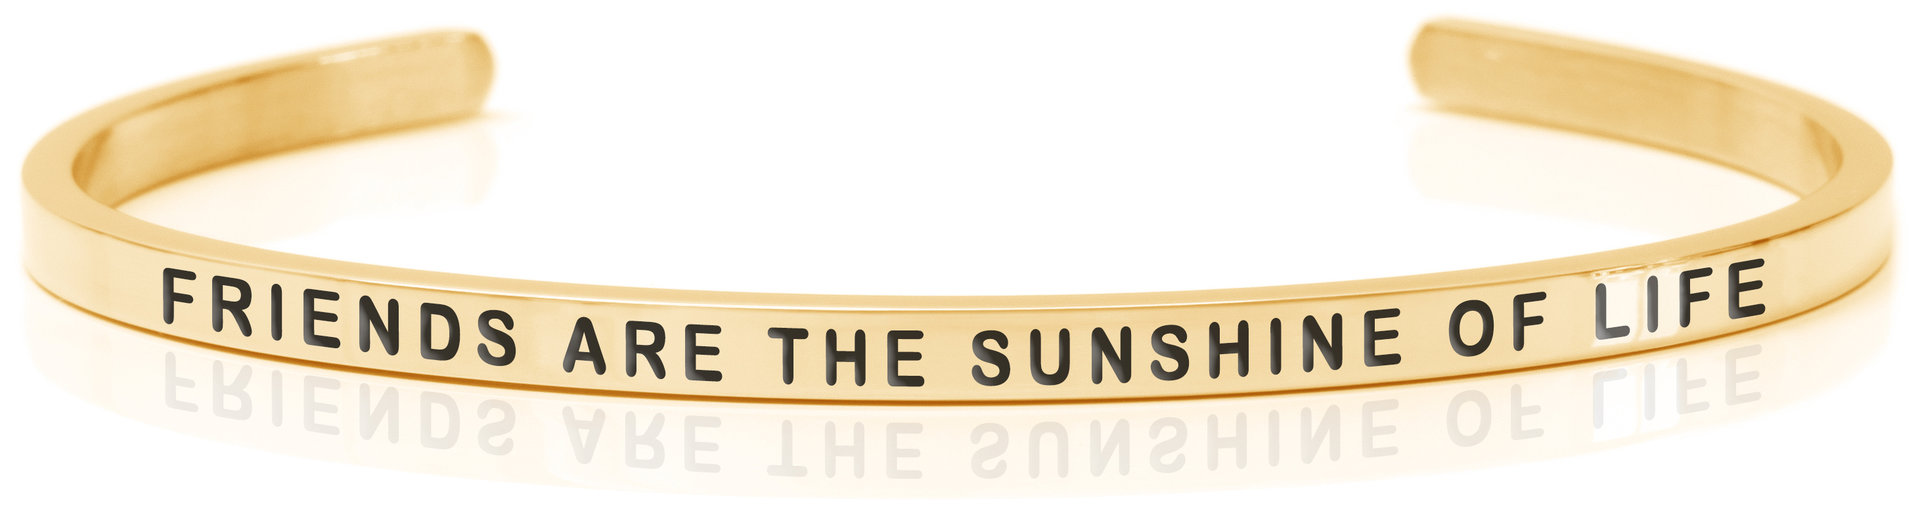 Daniel Sword armring Friends are the sunshine of life Gold